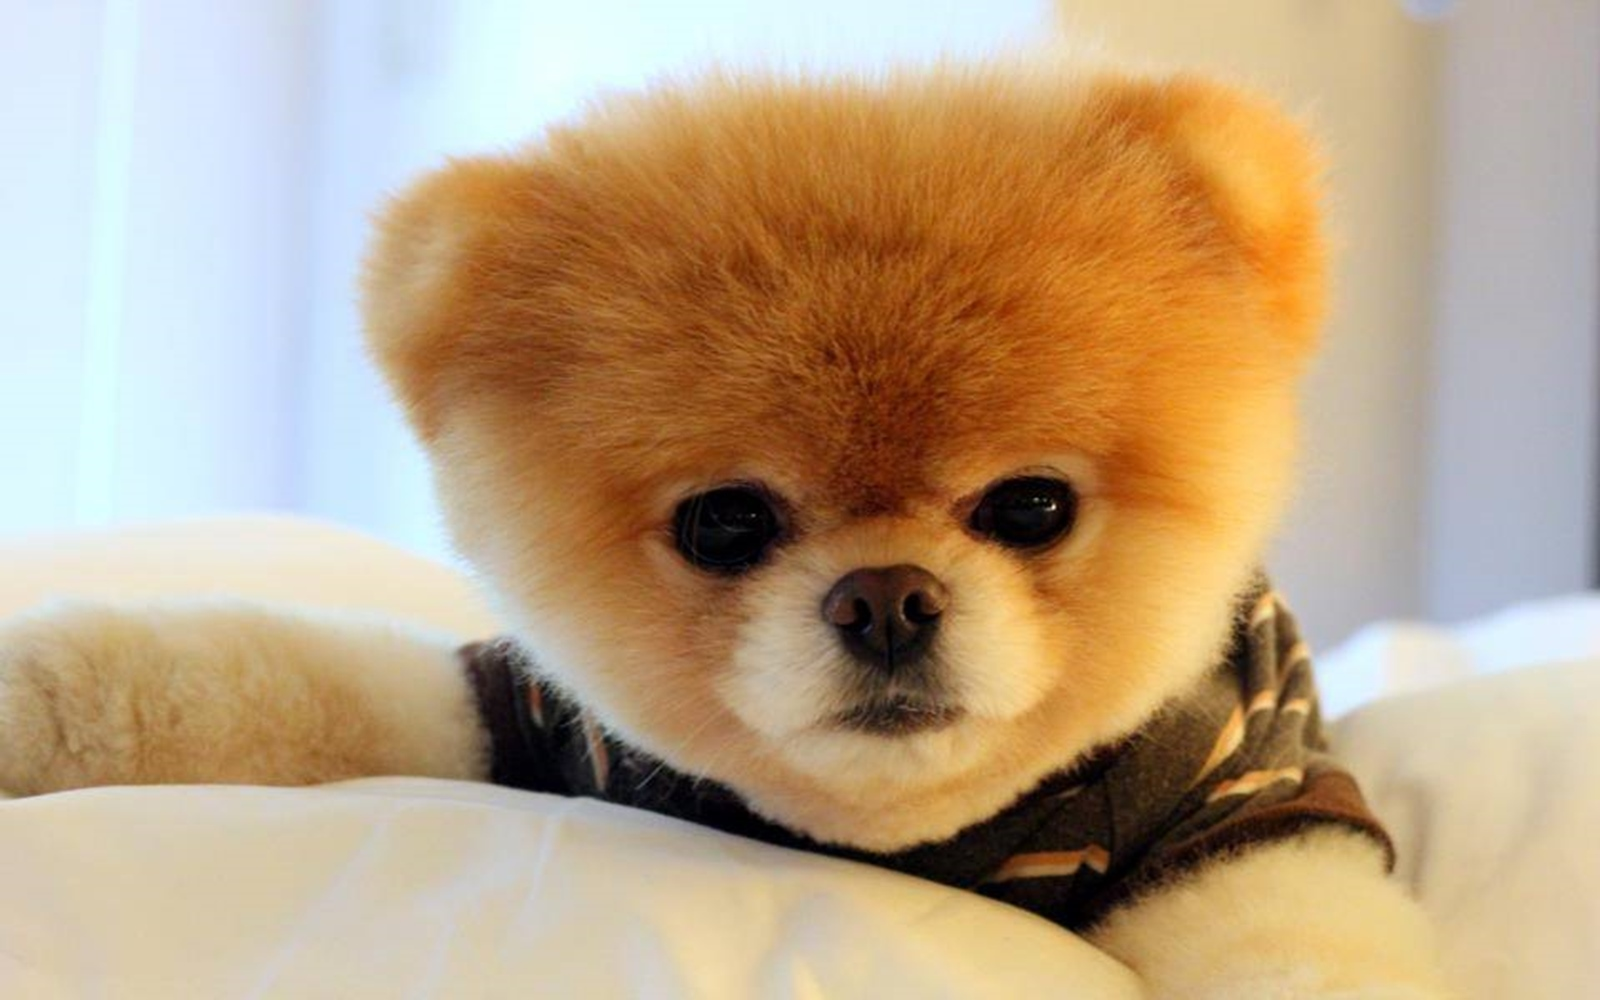 Boo Dog Images Free Download